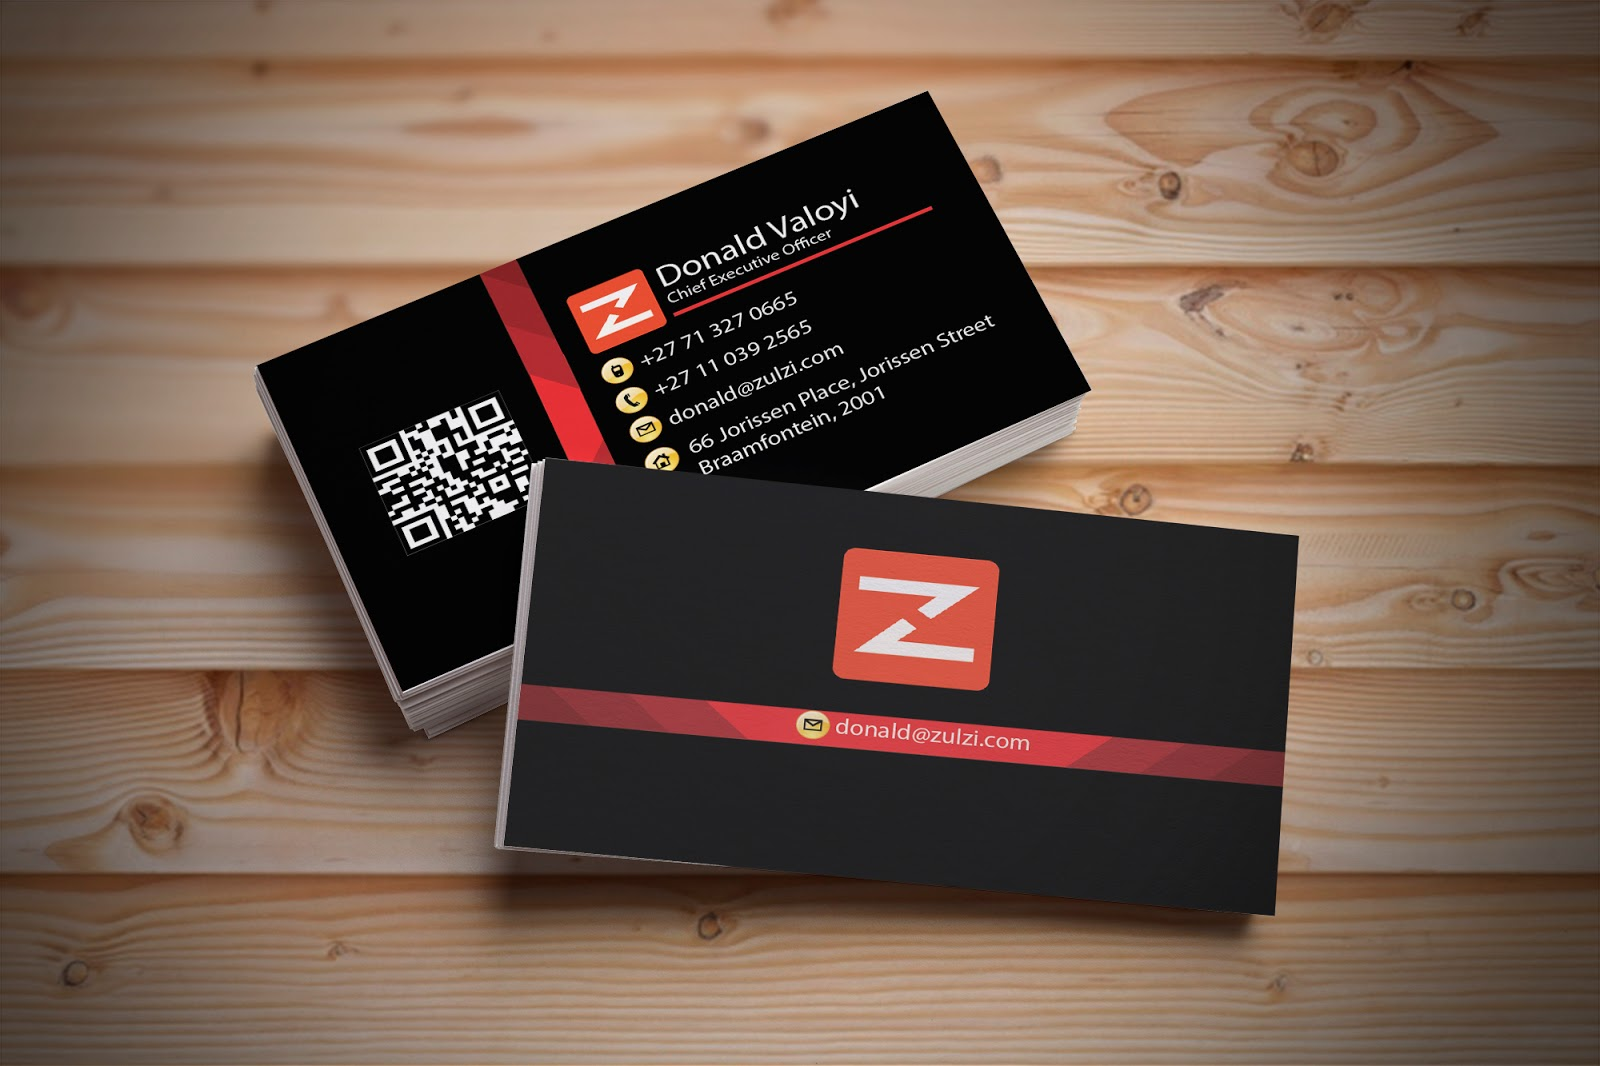 Fiverr gig video for Business card - M. K Graphics